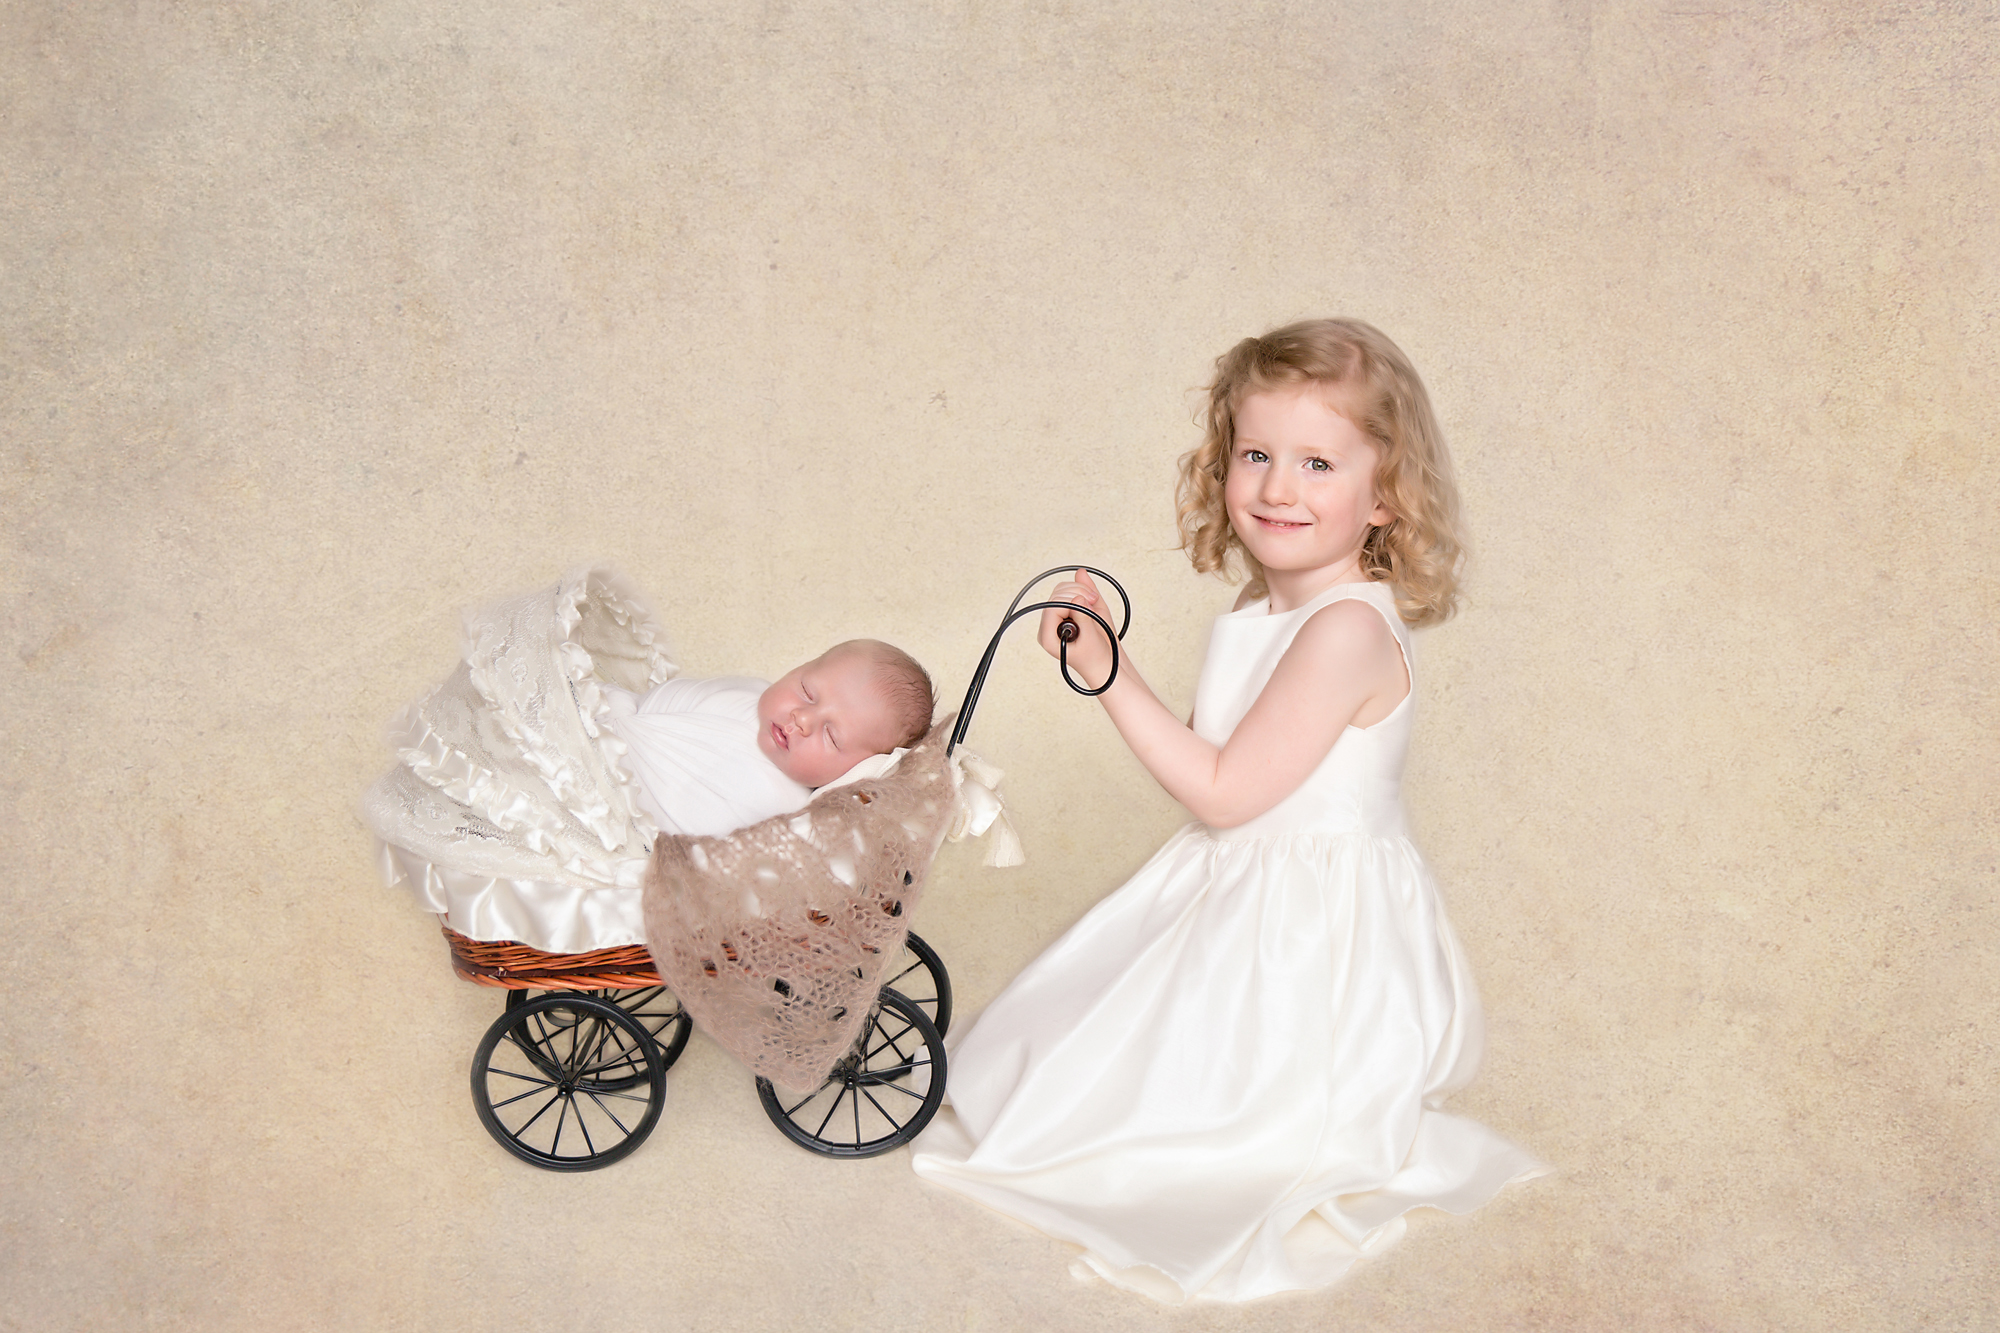 Siblings shot - newborn photography. Sister is posing with her newborn baby brother in a stroller. Calgary Newborn and Baby photographer - Milashka Photography.